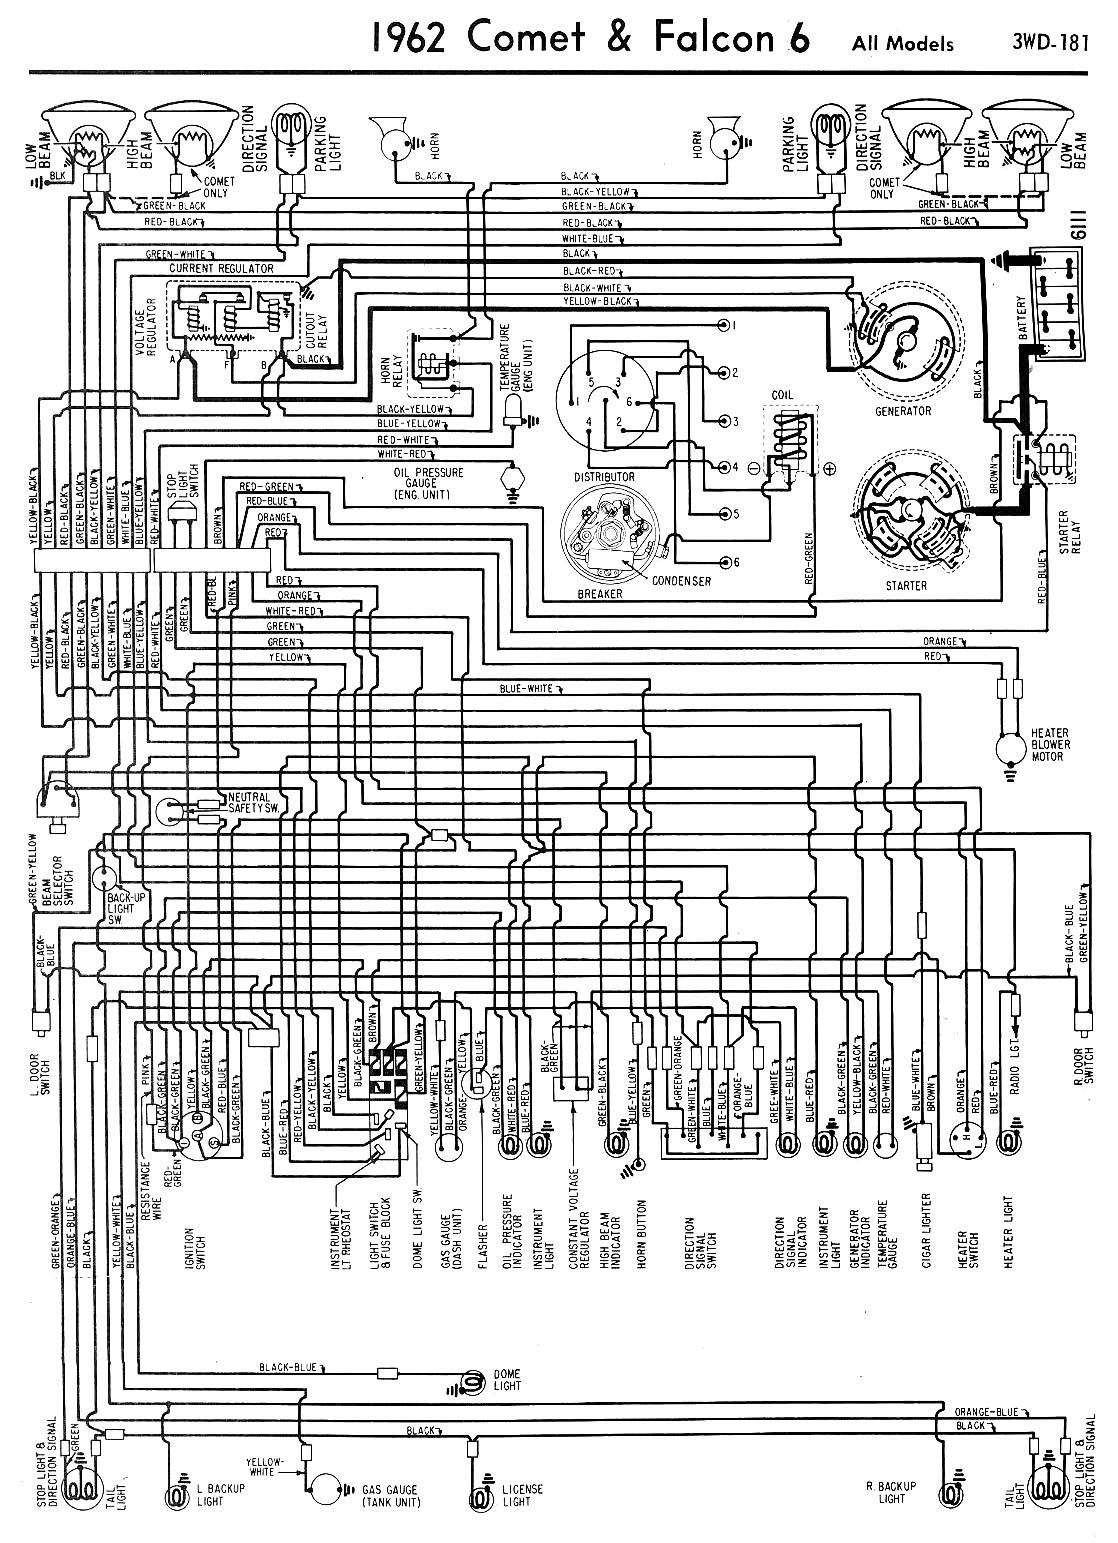 hight resolution of 62 falcon comet wiring